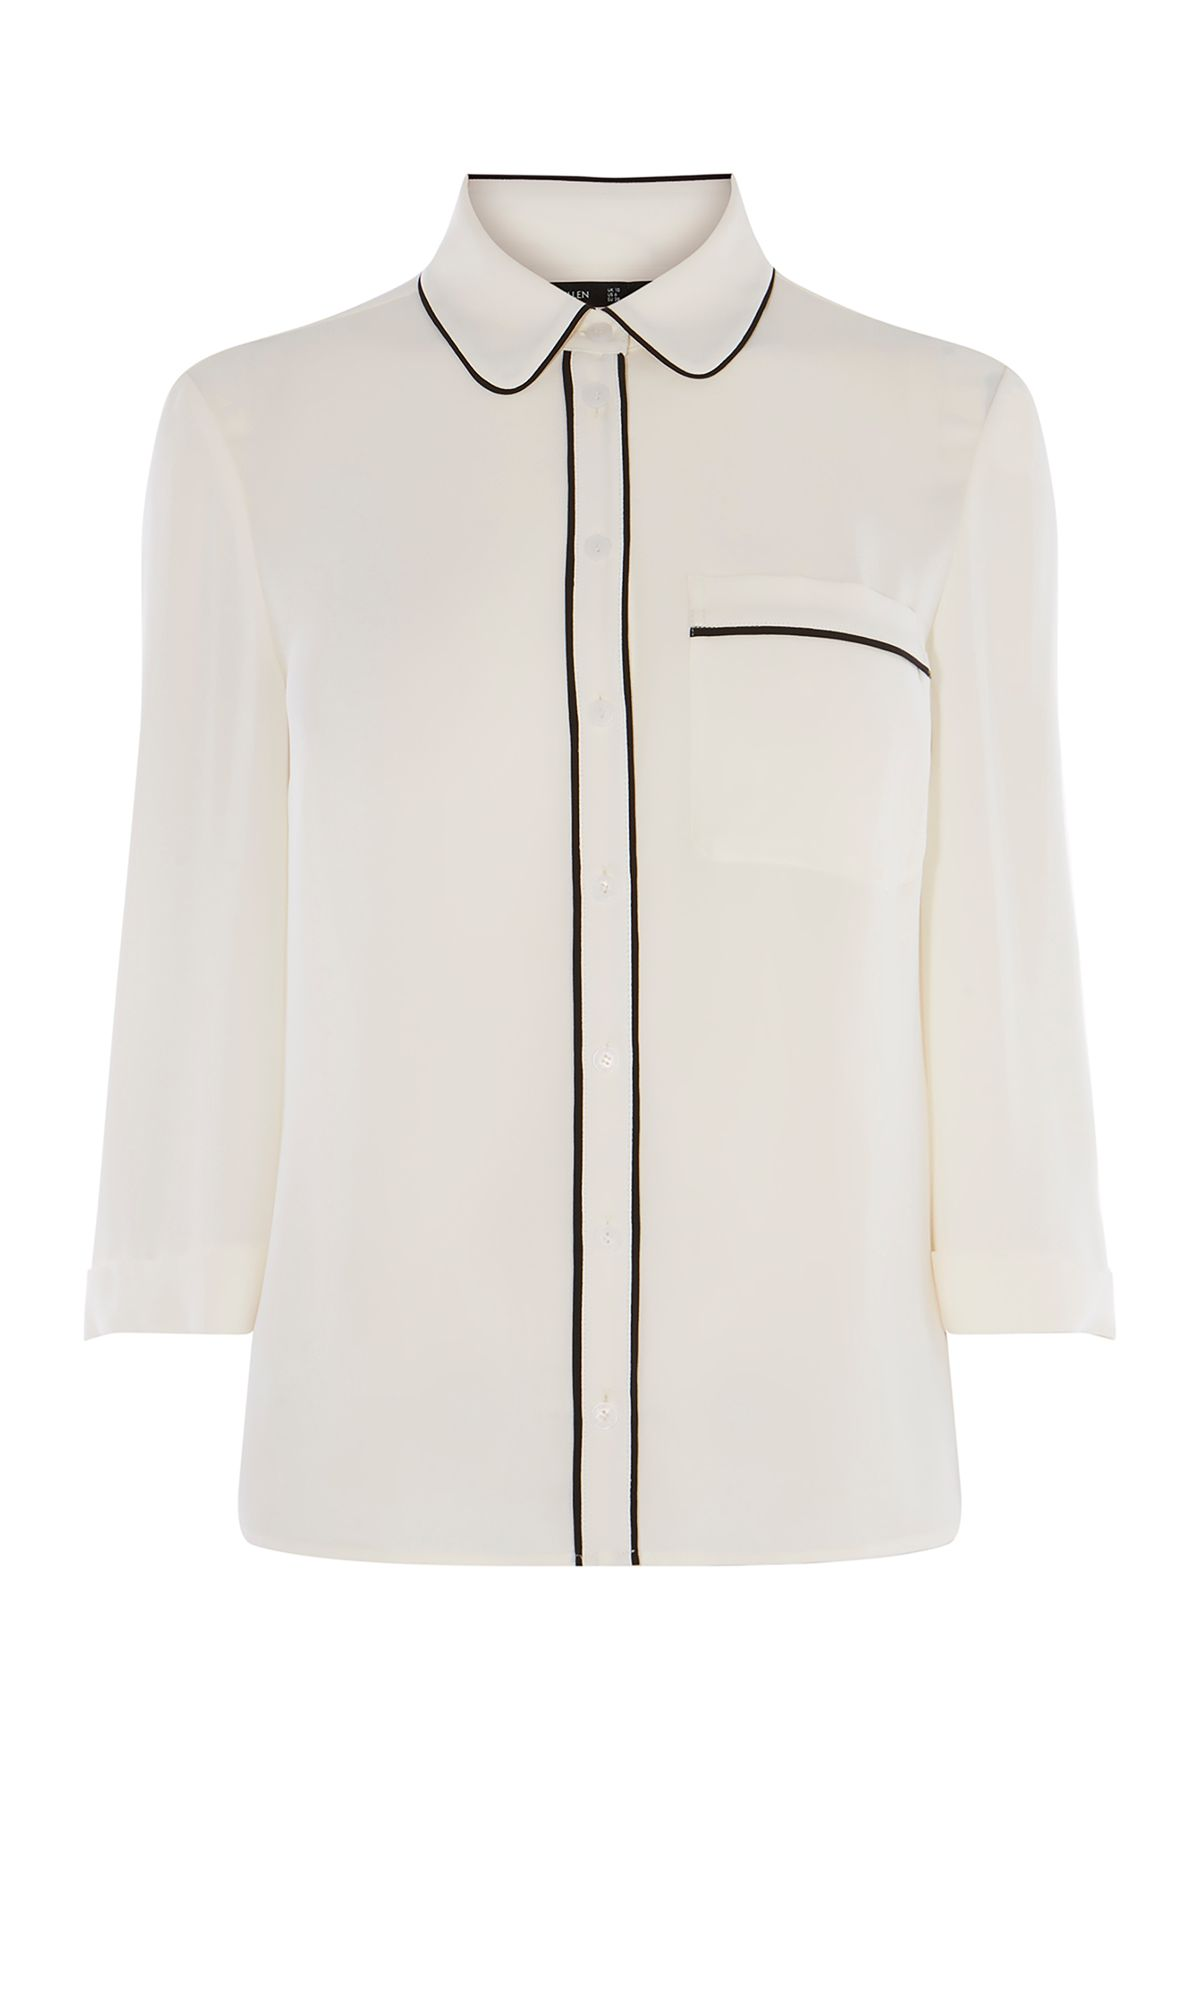 Karen Millen Contrast Piping Shirt, White